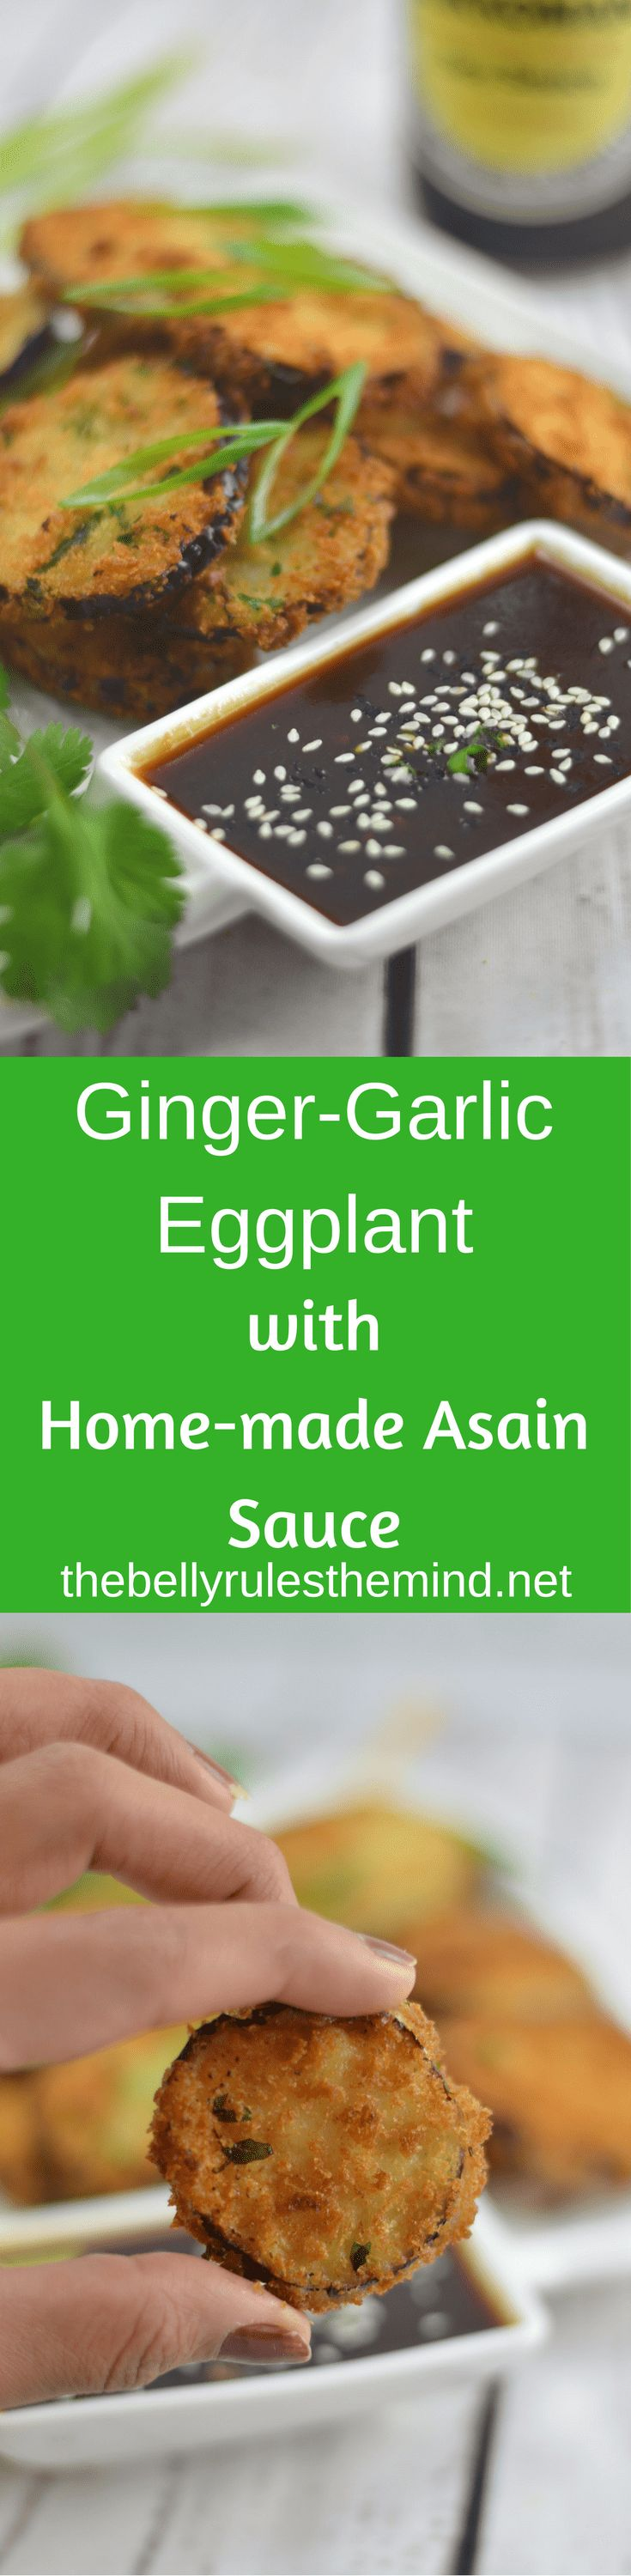 Entertain your friends, family and guests with this delicious Ginger- Garlic Eggplant With Homemade Asian Sauce.Careful...Ther're ADDICTIVE!! #SeasonYourHolidays #ad @KikkomanUSA  @Walmart  This holiday season,